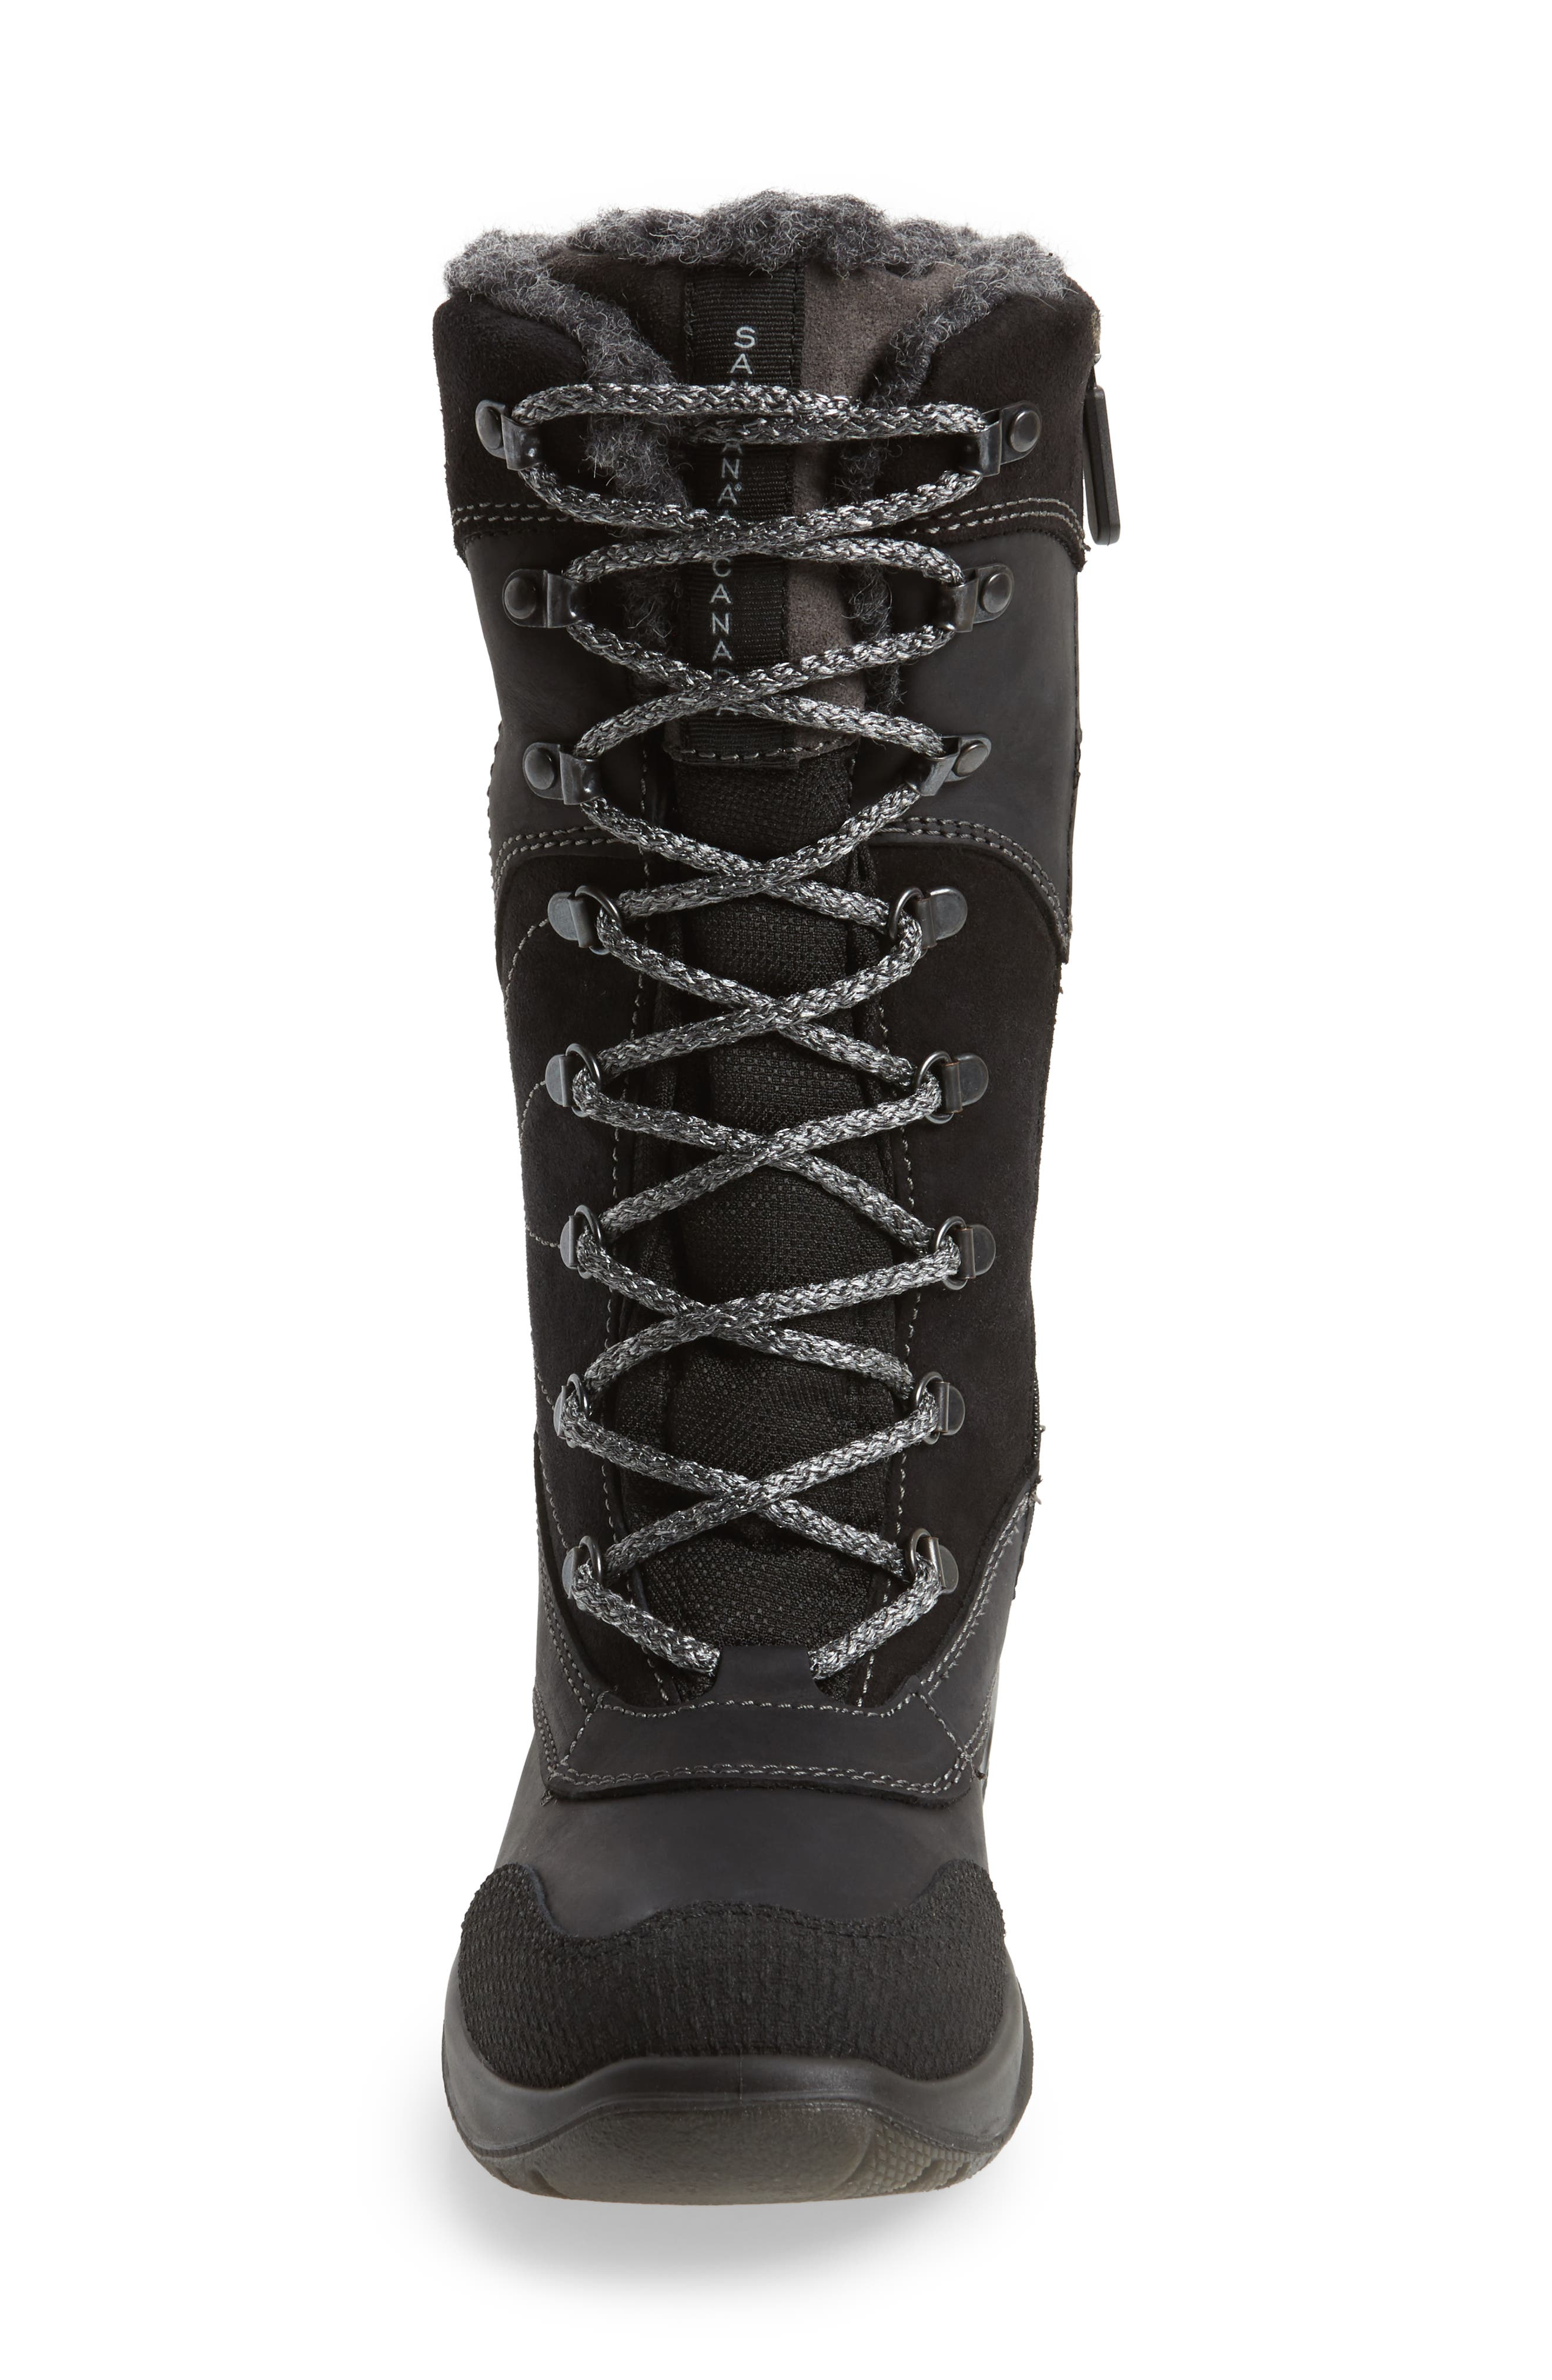 Topspeed Faux Fur Lined Waterproof Boot,                             Alternate thumbnail 4, color,                             Black Leather